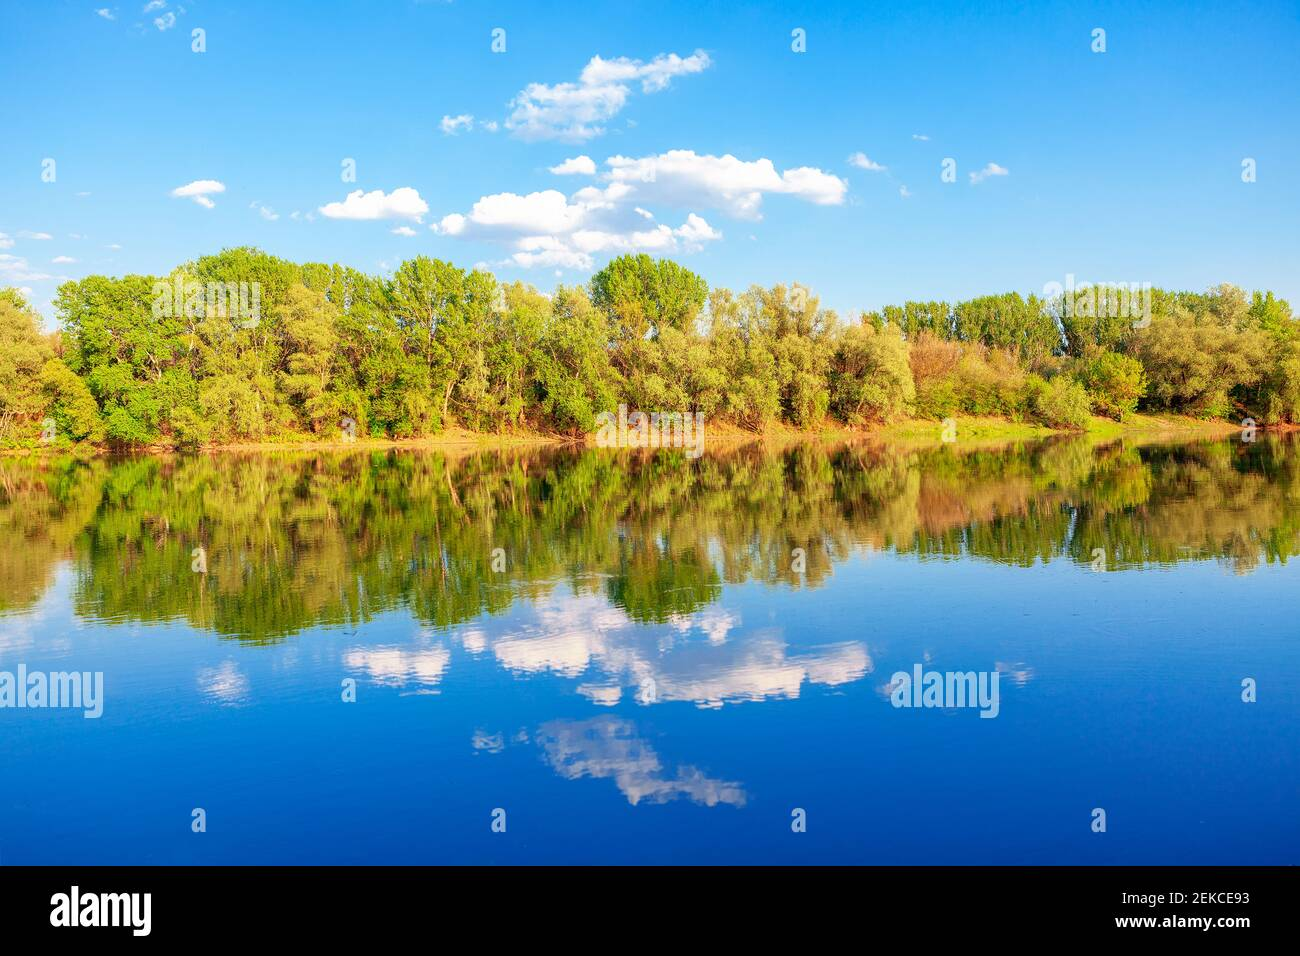 Nature reflection in the lake water. Majestic spring scenery Stock Photo